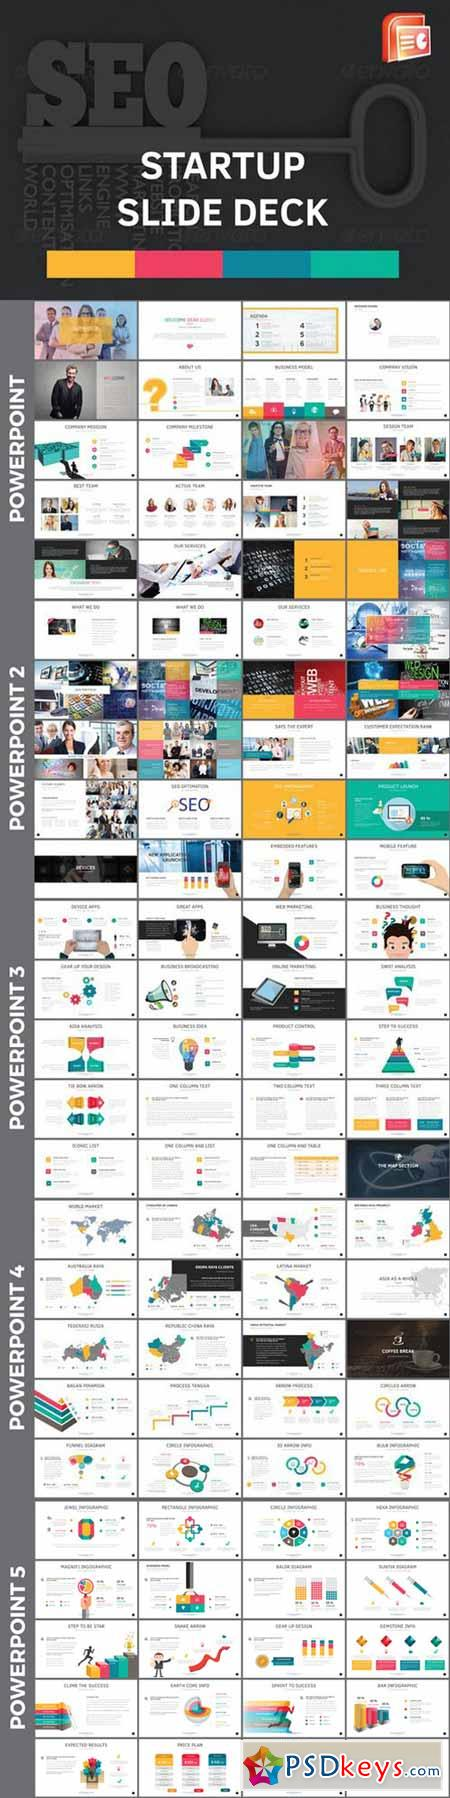 Startup slide deck powerpoint templates 524100 free for Powerpoint templates torrents